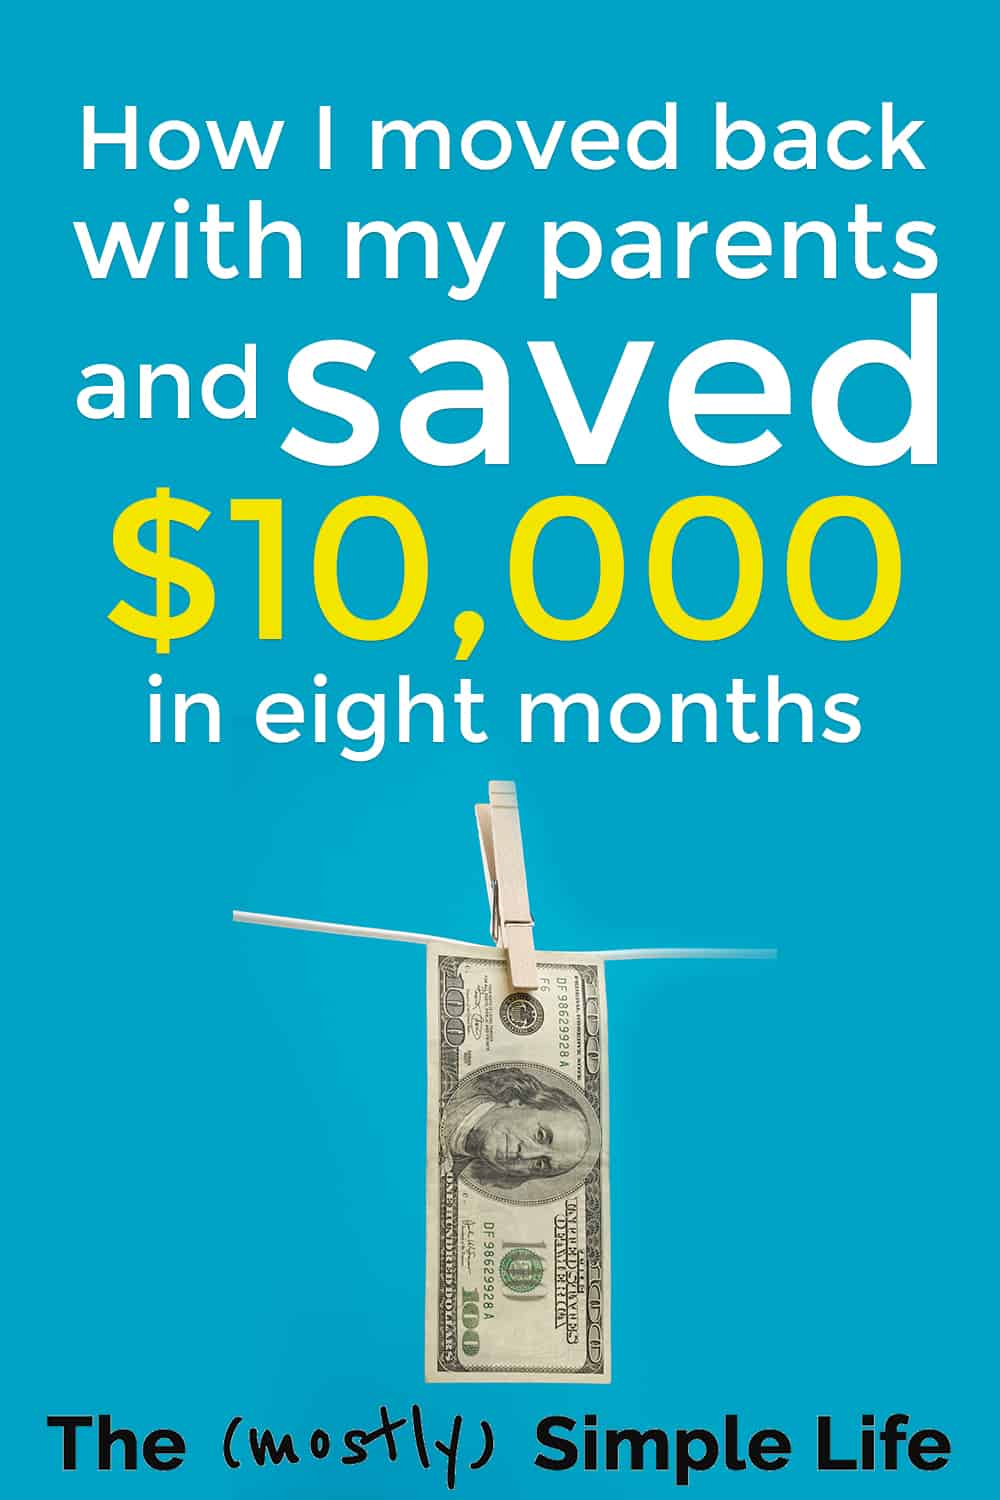 How I Moved Back with my Parents and Saved $10,000 in Nine Months